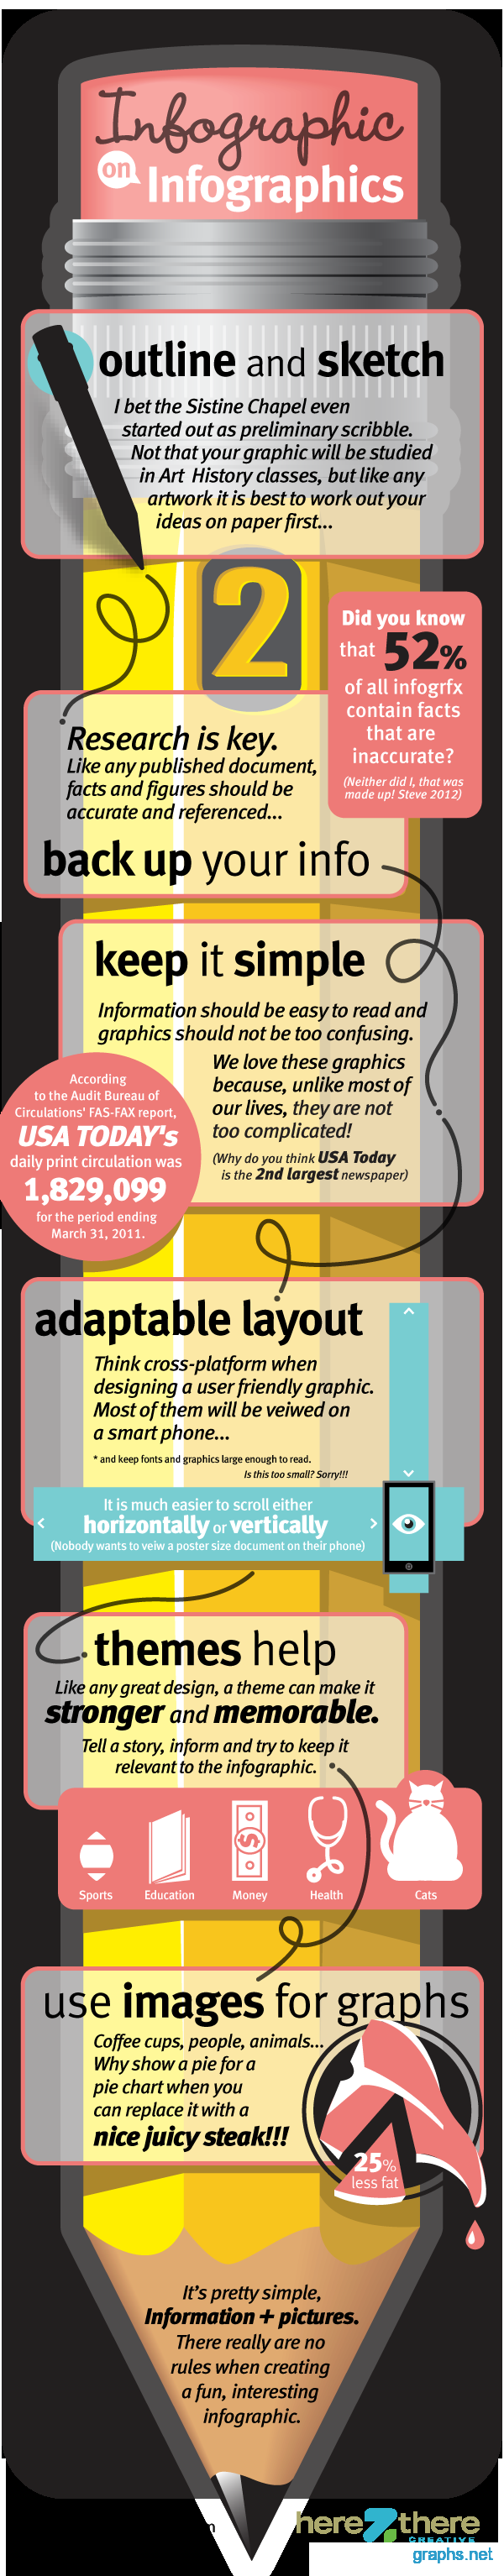 infographic design tips and ideas